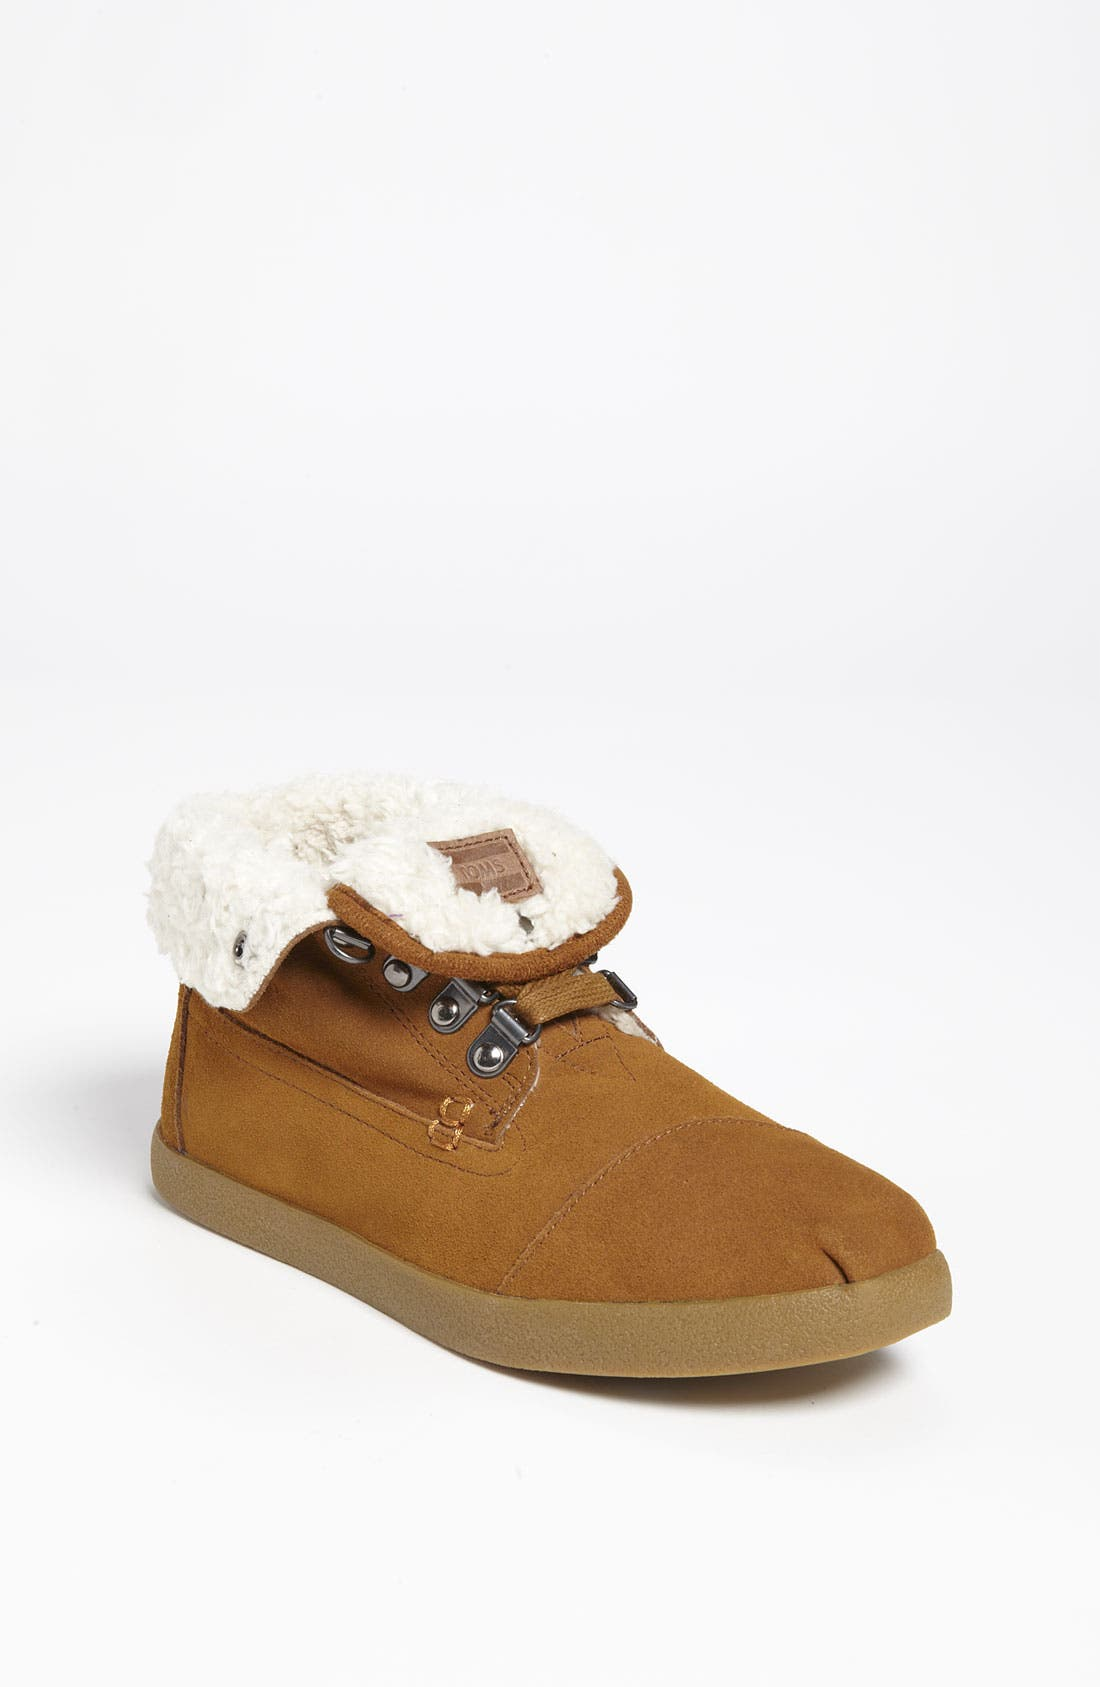 Alternate Image 1 Selected - TOMS 'Botas' Fleece Boot (Women)